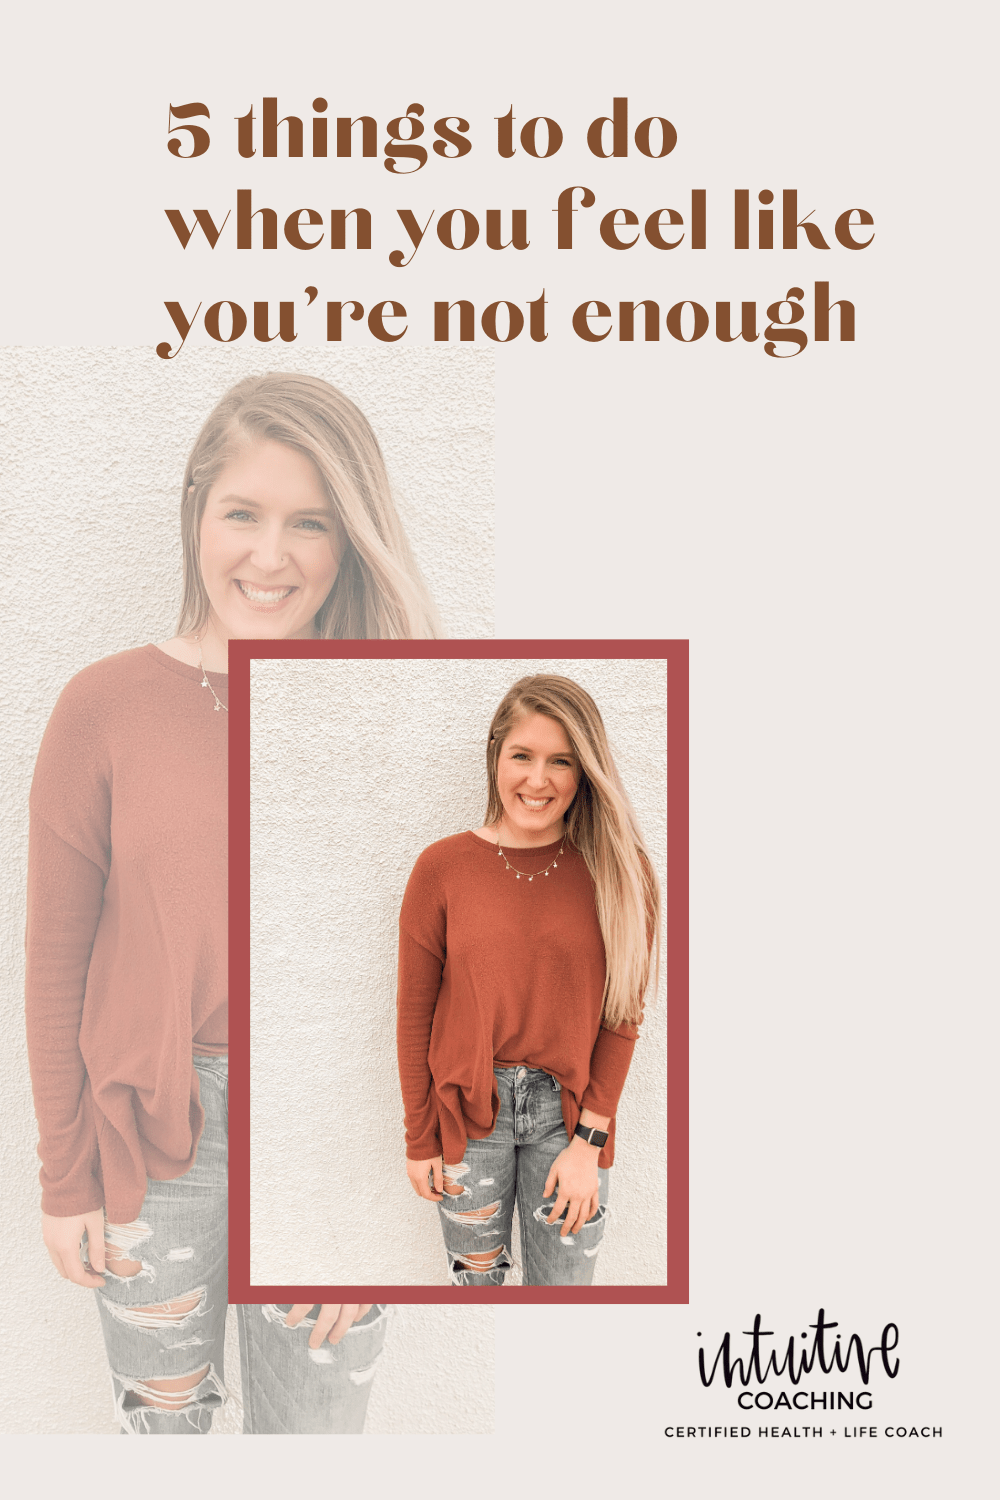 5 things to do when you feel like your'e not enough